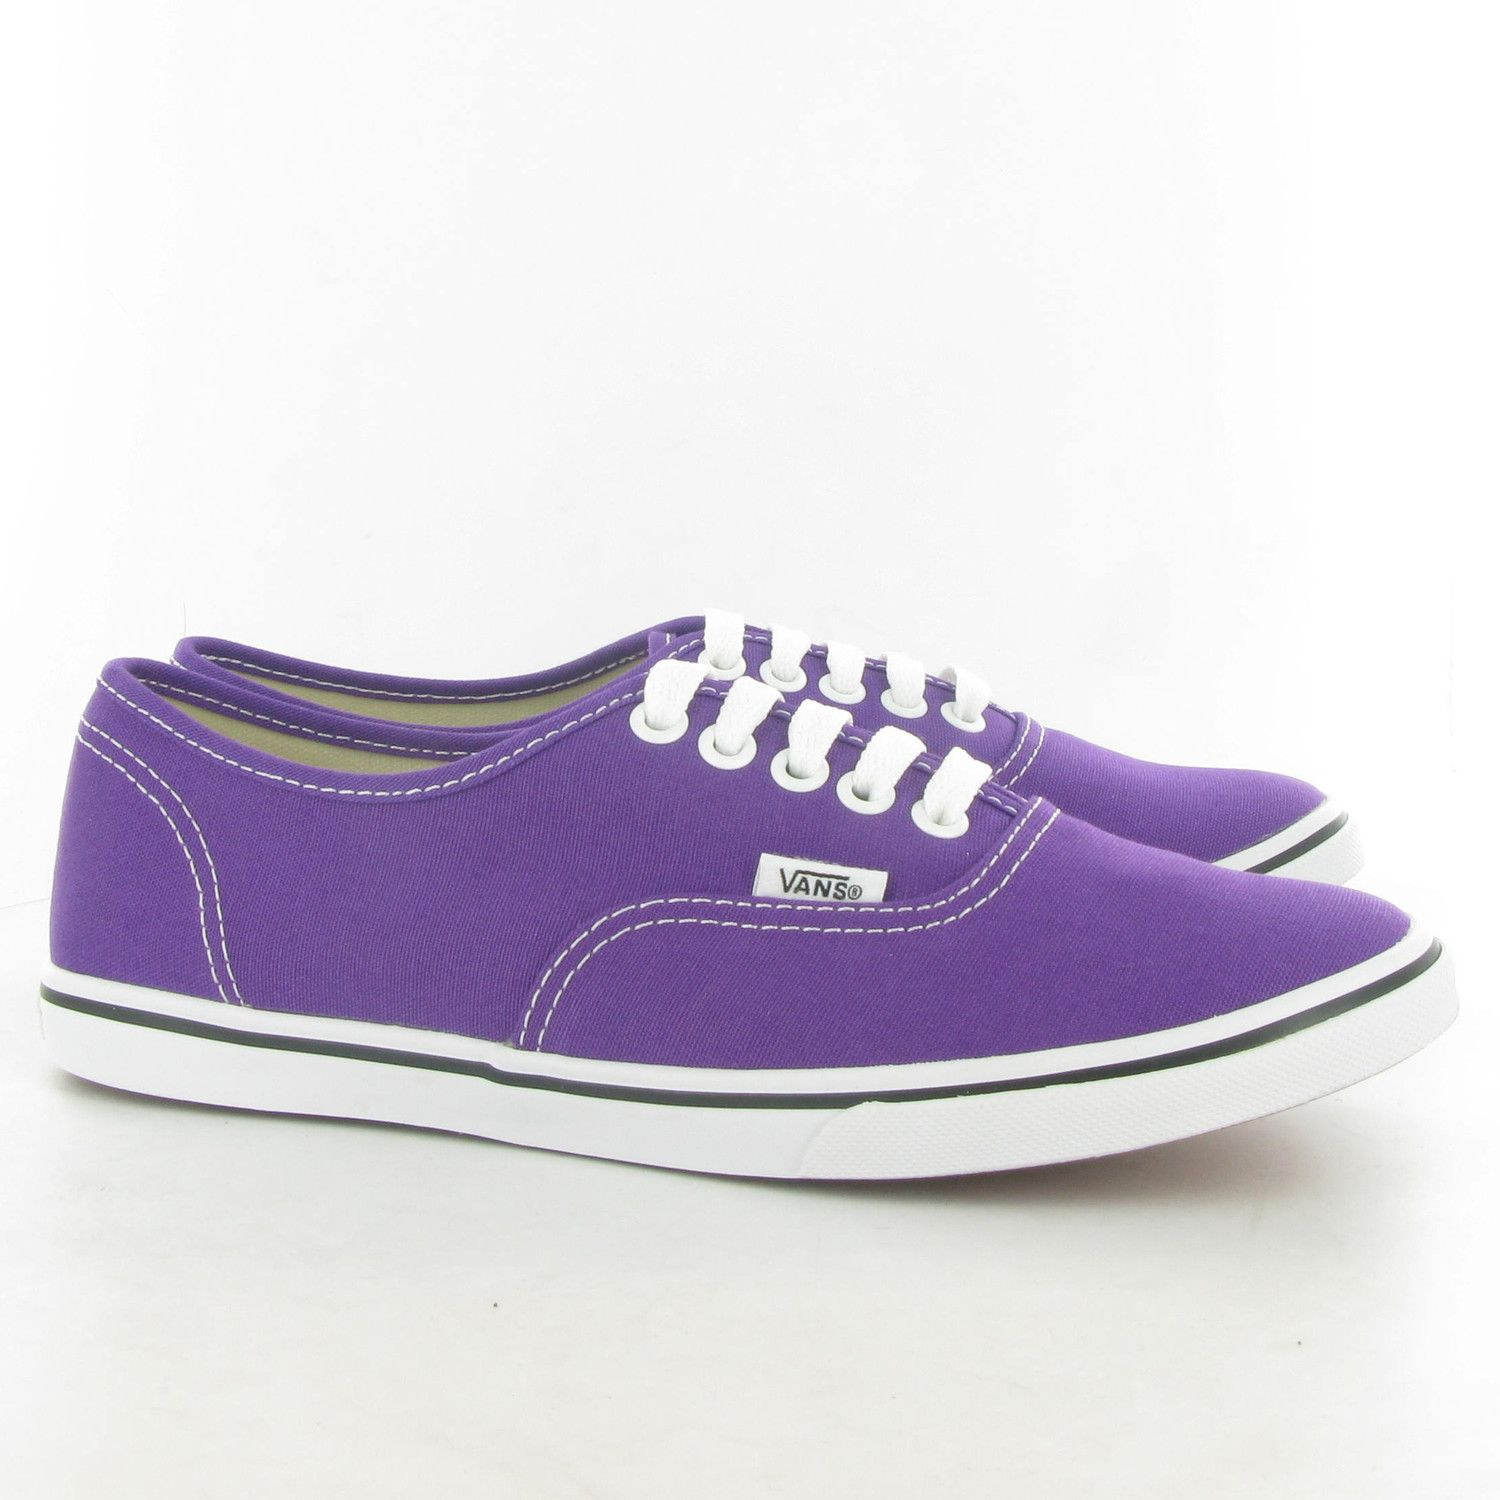 5d3f6b16189dca Purple VANS  3